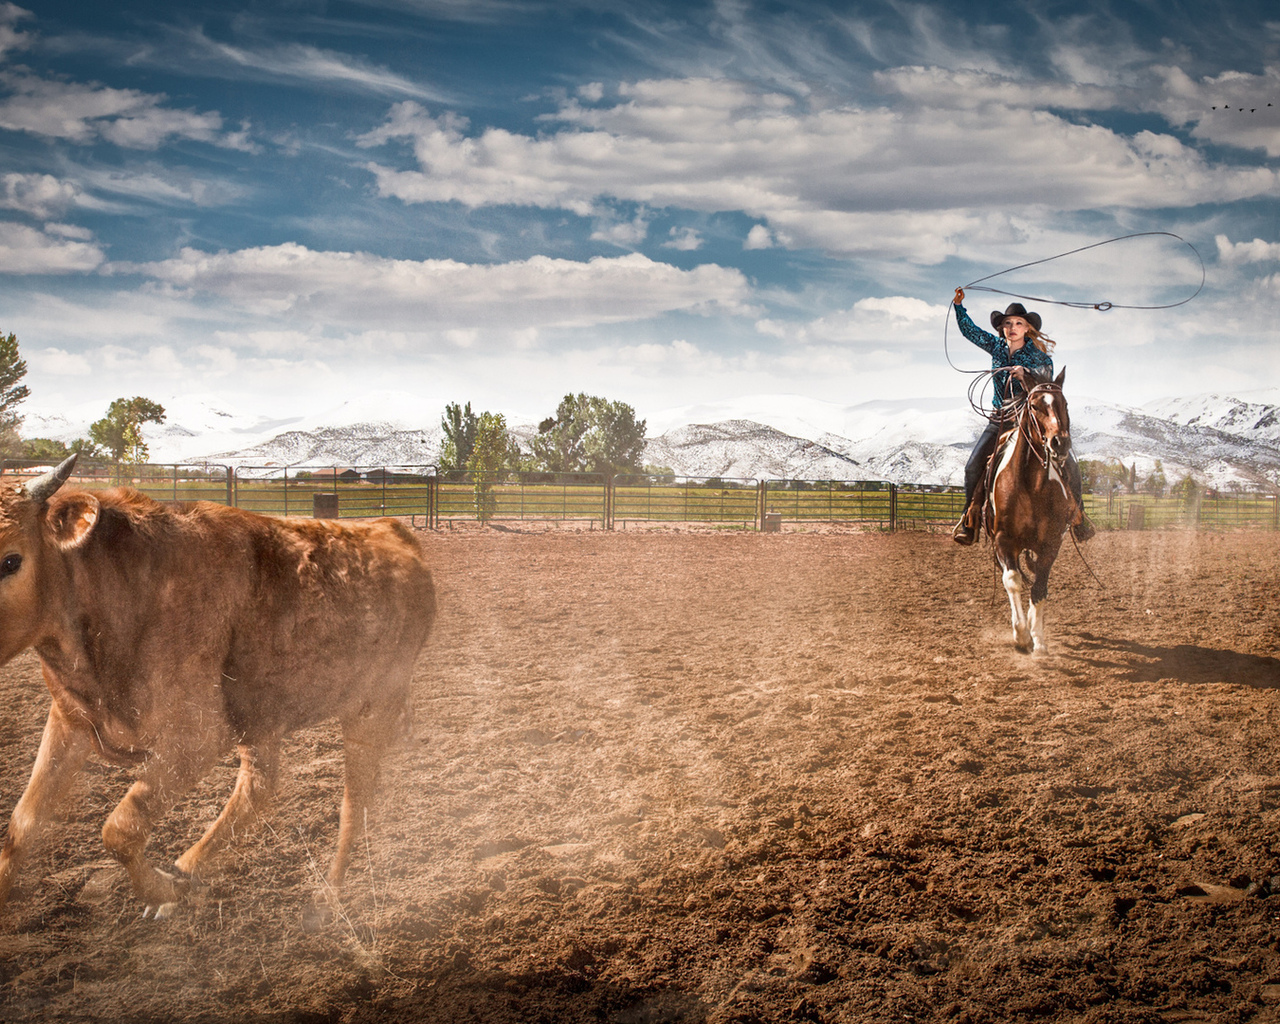 farm, rodeo, horse, cowgirl, ropping cattle